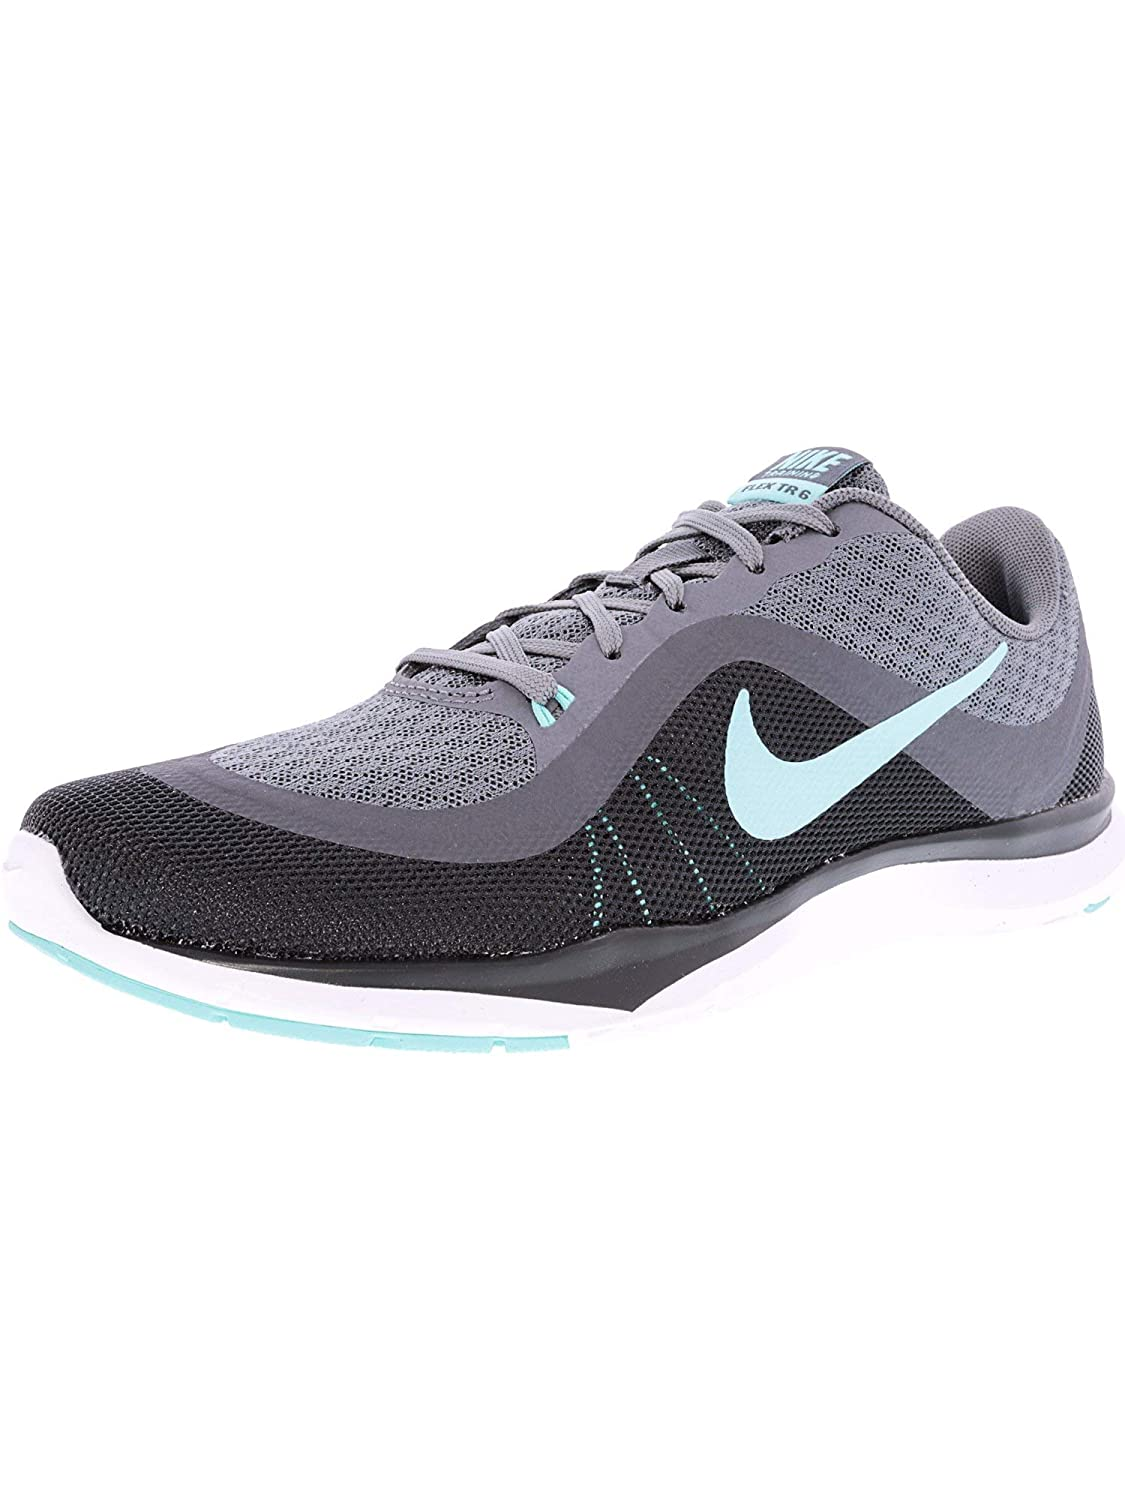 08286927e52f Nike Womens Flex Trainer 6 Training Shoes Cool Grey Hyper Turquoise Dark  Grey 7. 5  Buy Online at Low Prices in India - Amazon.in